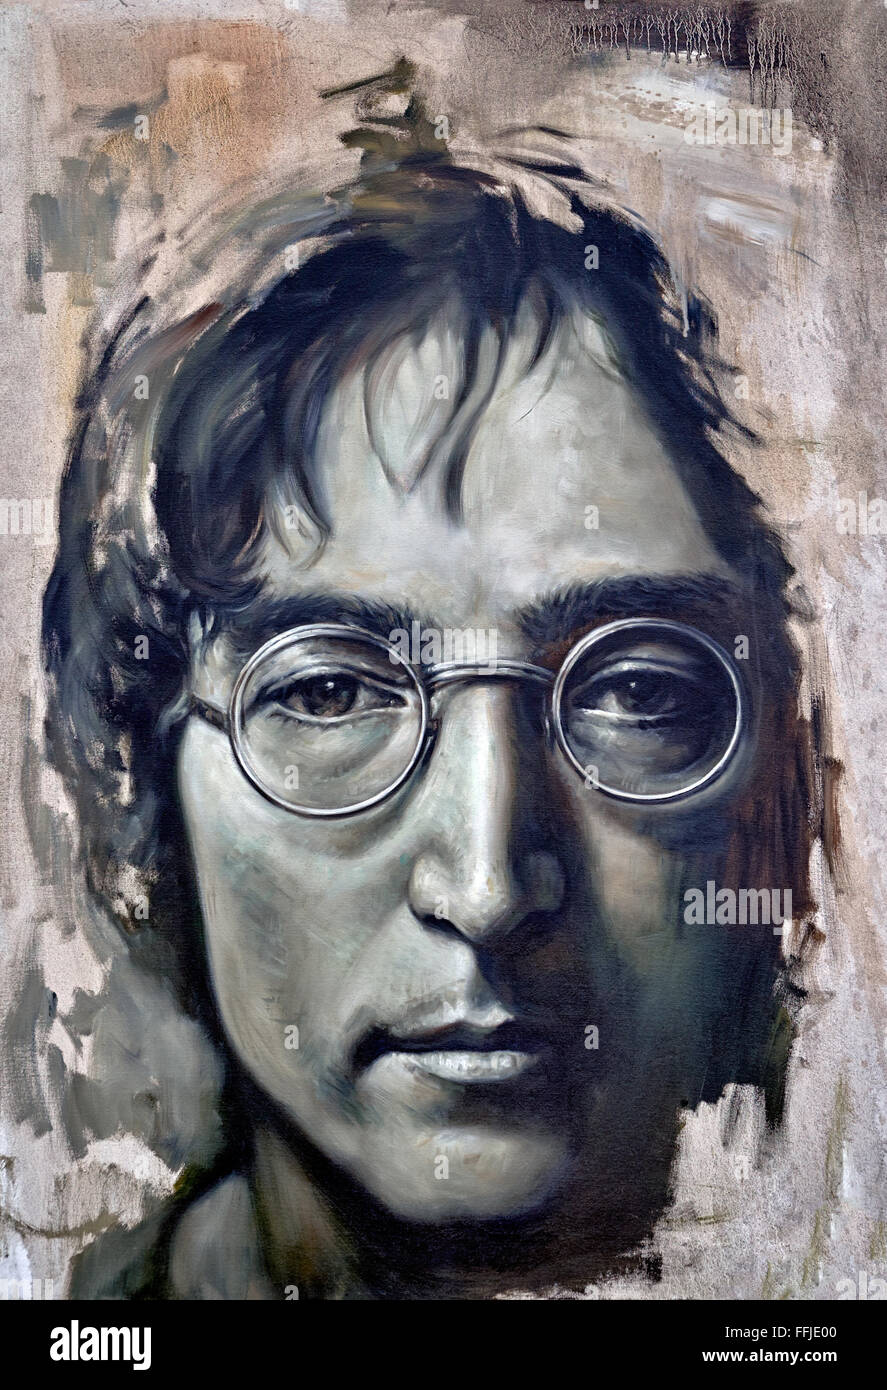 unfinished-painting-of-john-lennon-FFJE0